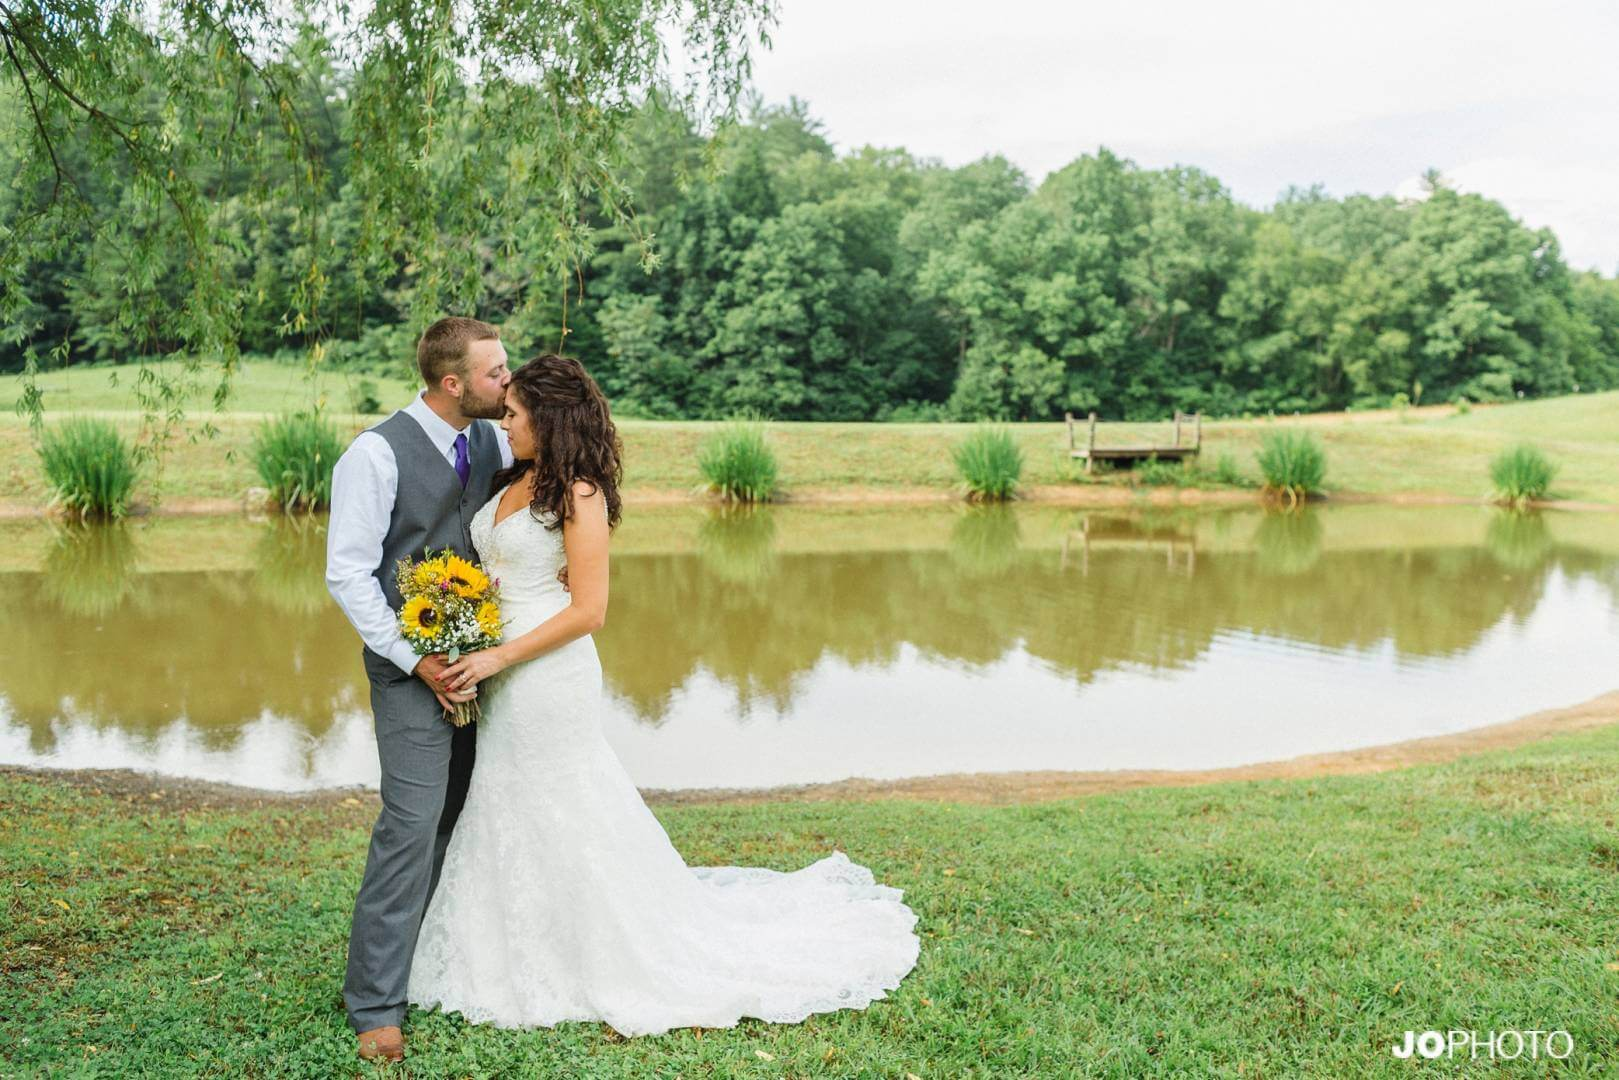 jessica and tyler selected one of our professional photographers named jophoto to handle their wedding and reception pictures at country manor acres